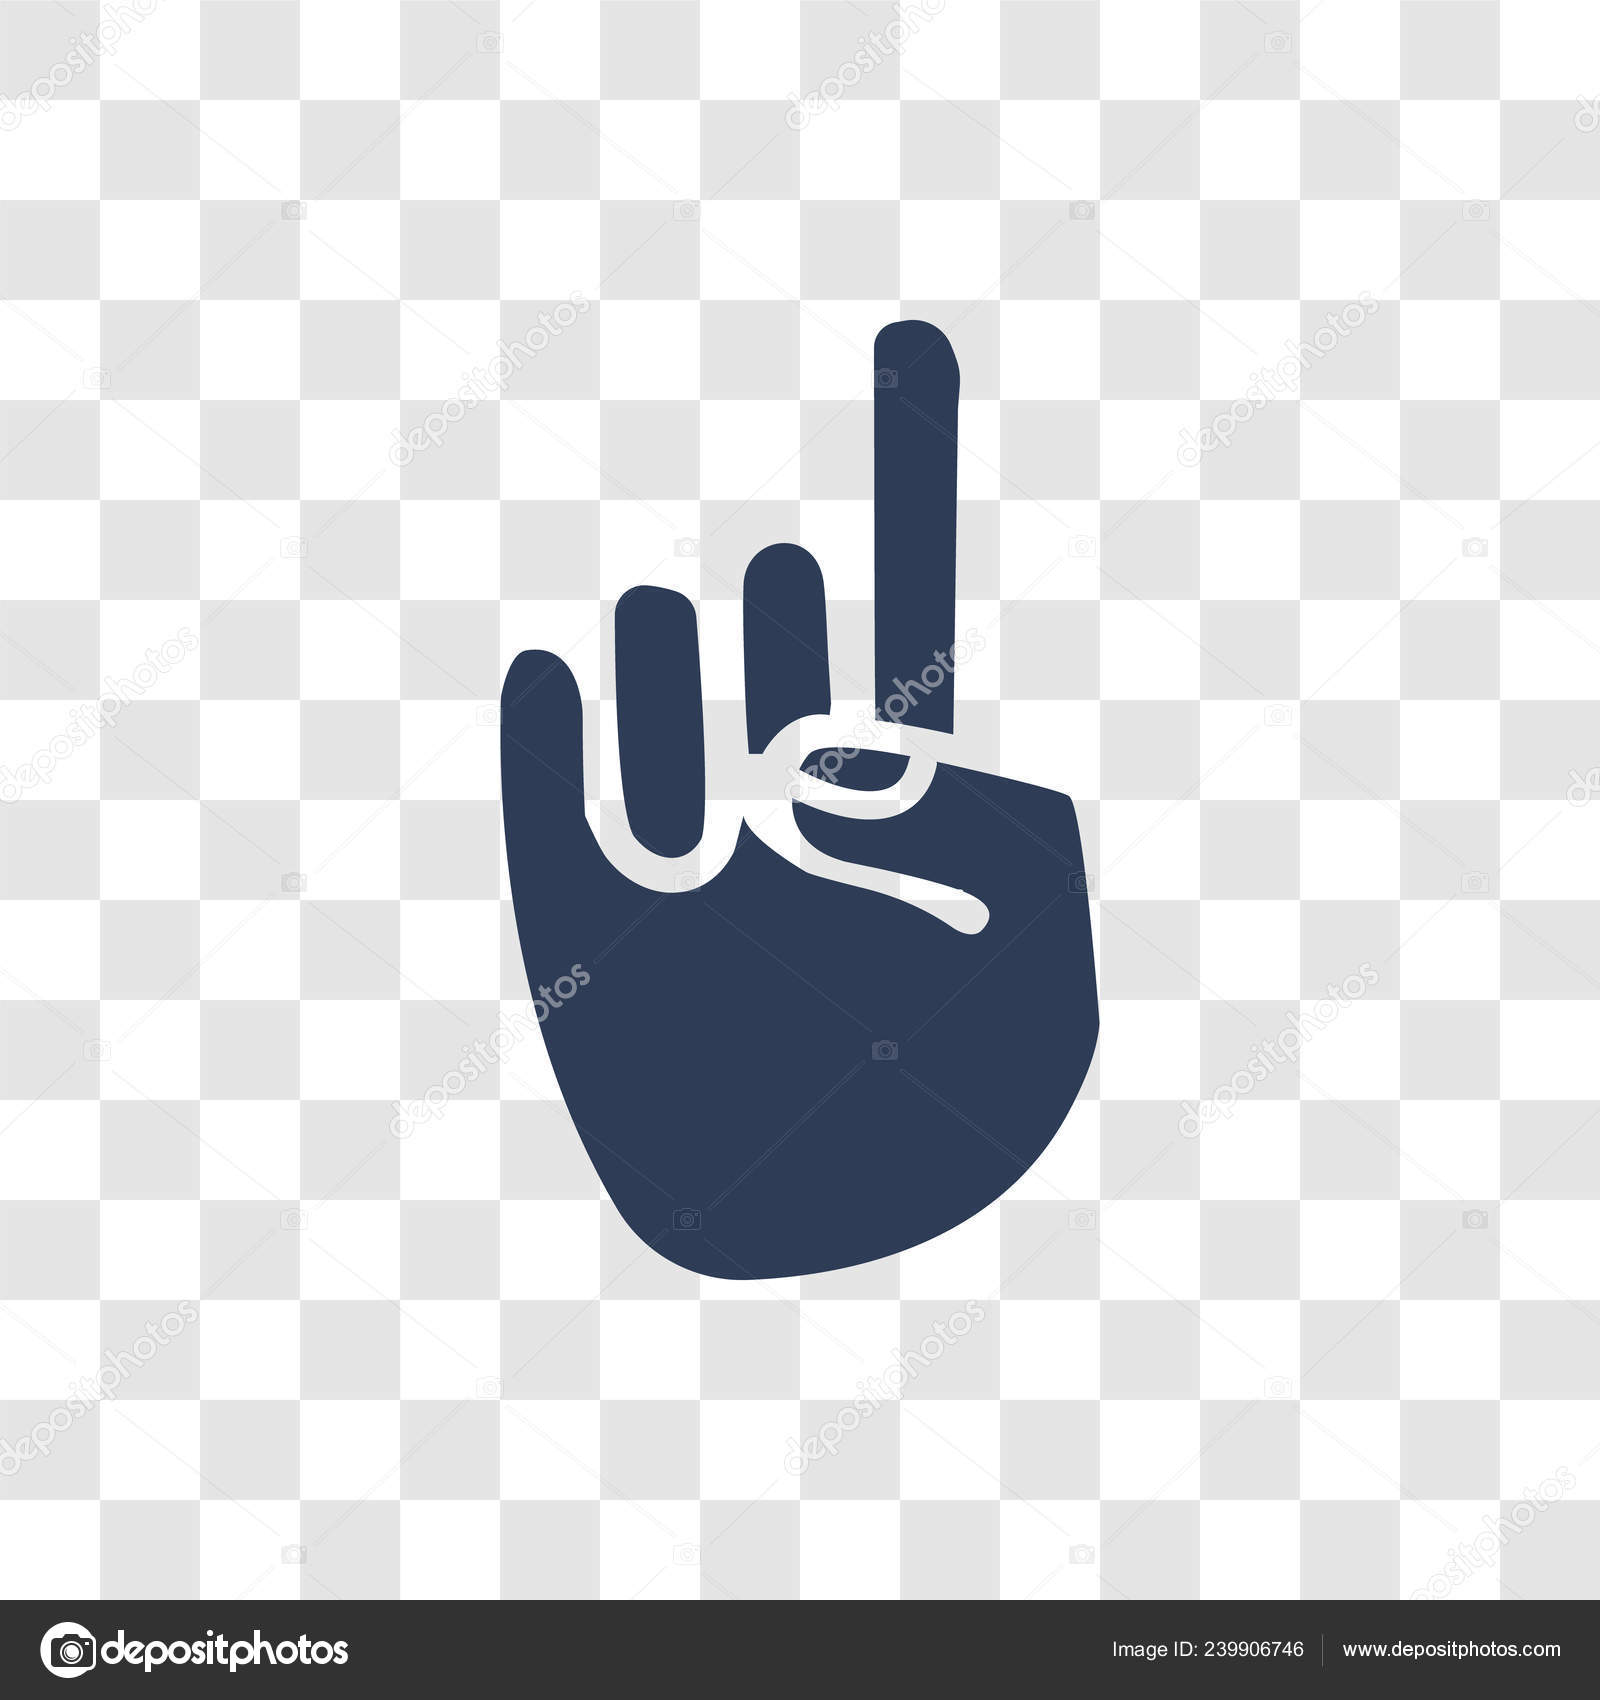 background pointing hand transparent pointing hand icon trendy pointing hand logo concept transparent background stock vector c bestvectorstock 239906746 background pointing hand transparent pointing hand icon trendy pointing hand logo concept transparent background stock vector c bestvectorstock 239906746